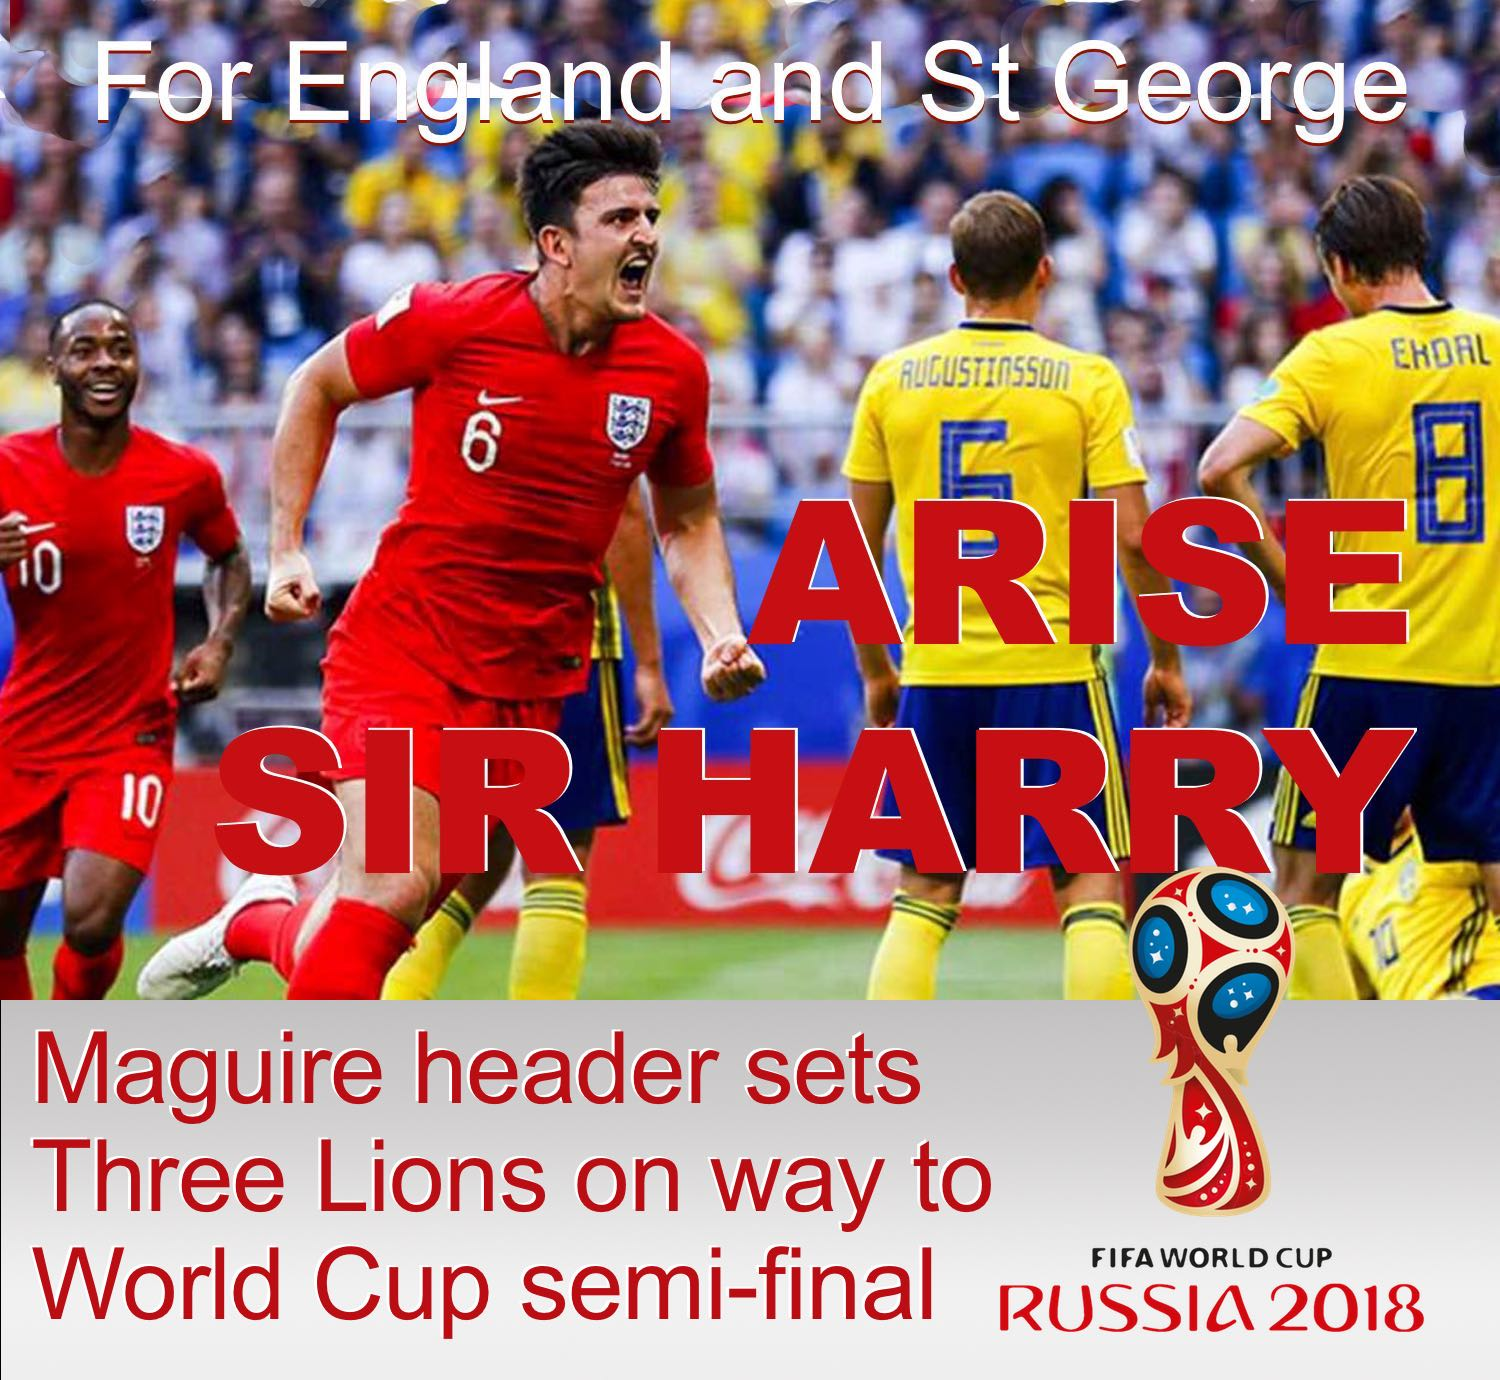 Harry Magure, former Blade and lifelong Sheffield United fan, set England on the way to the World Cup semi-finals in Russia with the first of the Three Lions' goals in a 2-0 win against Sweden